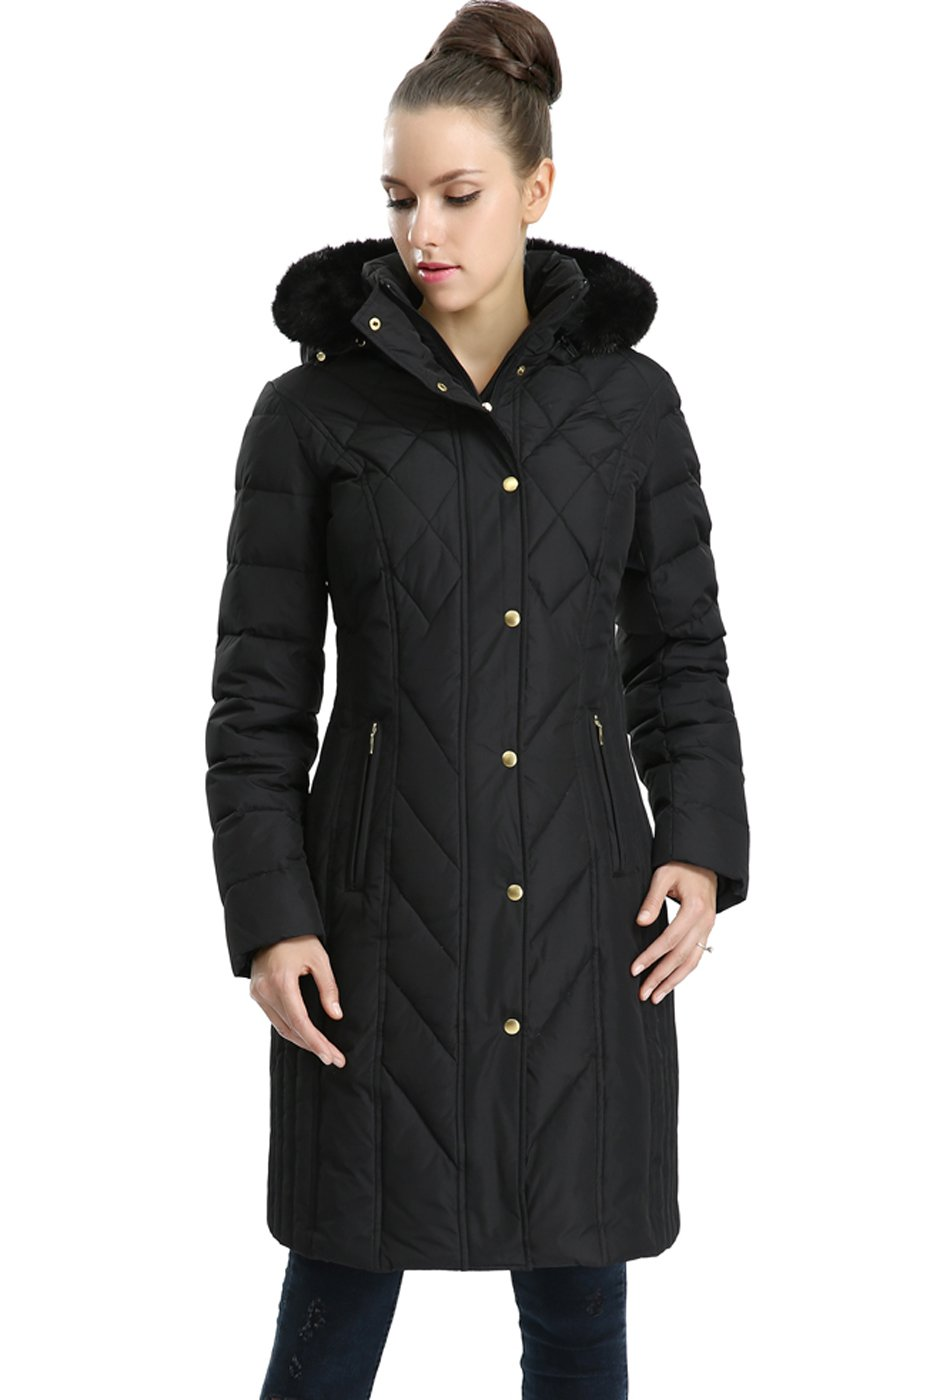 78a02a3d5fc BGSD Women s Addi Waterproof Down Parka Coat (Regular   Plus Size) product  image